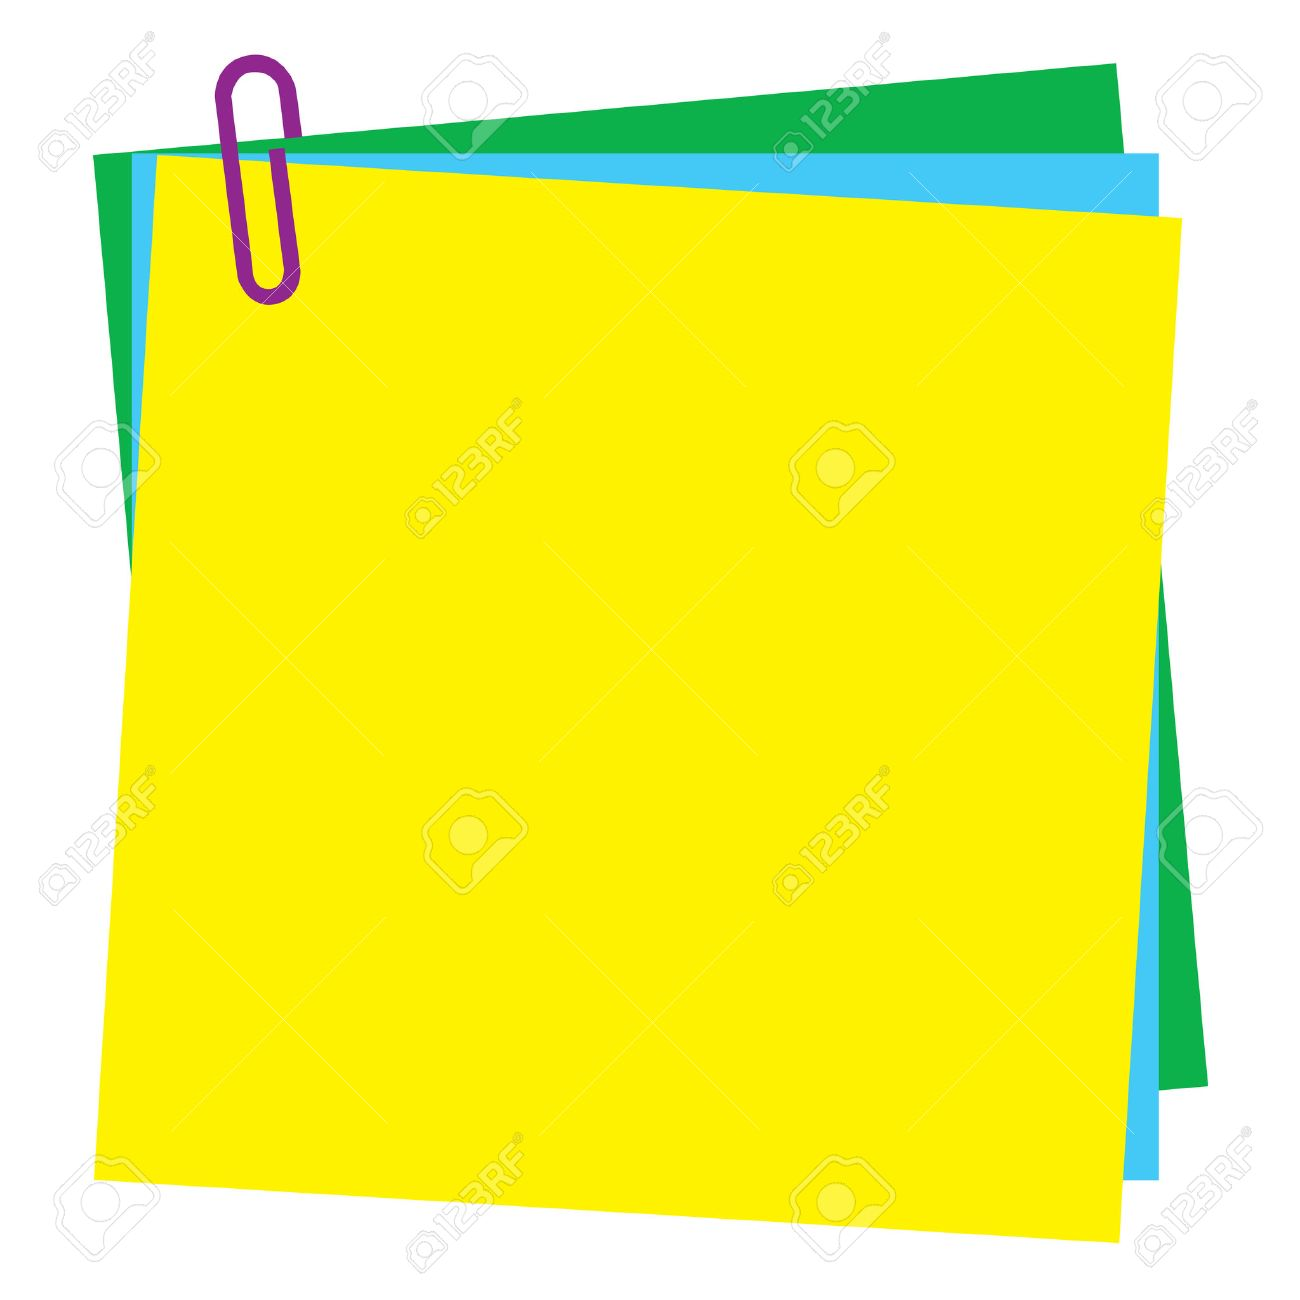 Free vector graphic sticky note note info paper free image on - Sticky Note Blank Post It Note Paper With Paperclip